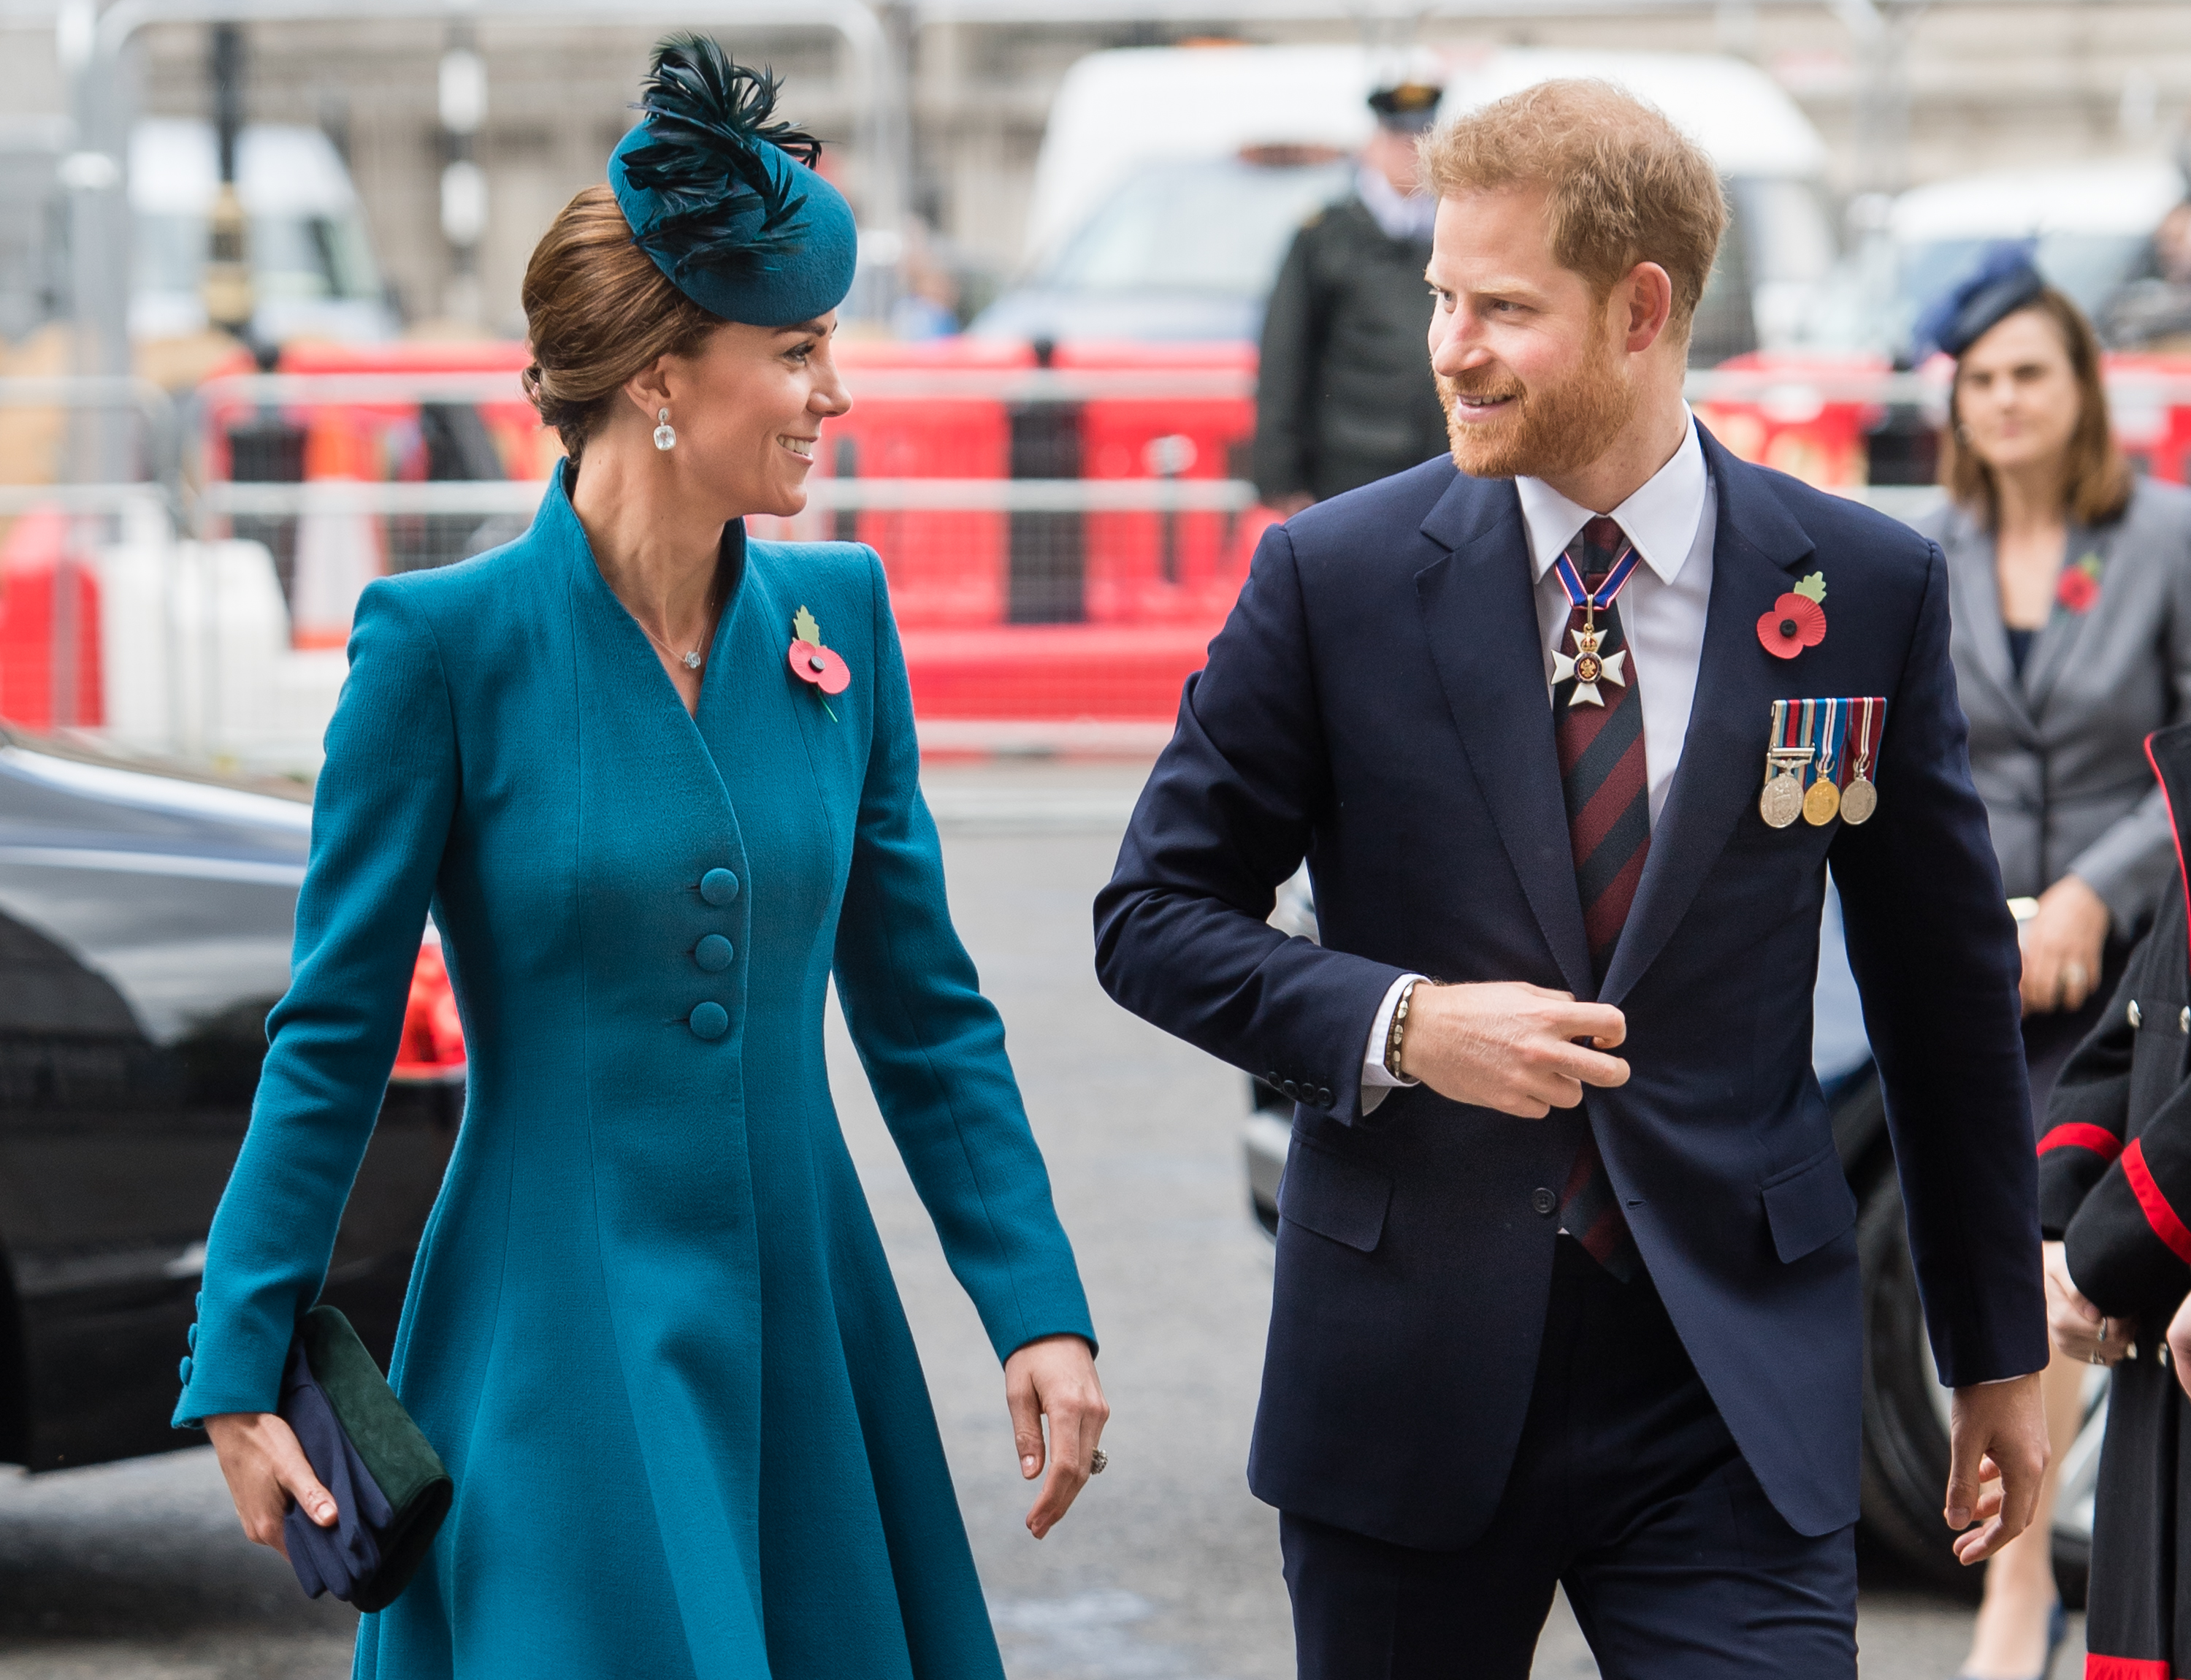 LONDON, ENGLAND - APRIL 25: Catherine, Duchess of Cambridge and Prince Harry, Duke of Sussex  attend the ANZAC Day Service of Commemoration and Thanksgiving at Westminster Abbey on April 25, 2019 in London, United Kingdom. (Photo by Samir Hussein/Samir Hussein/WireImage)